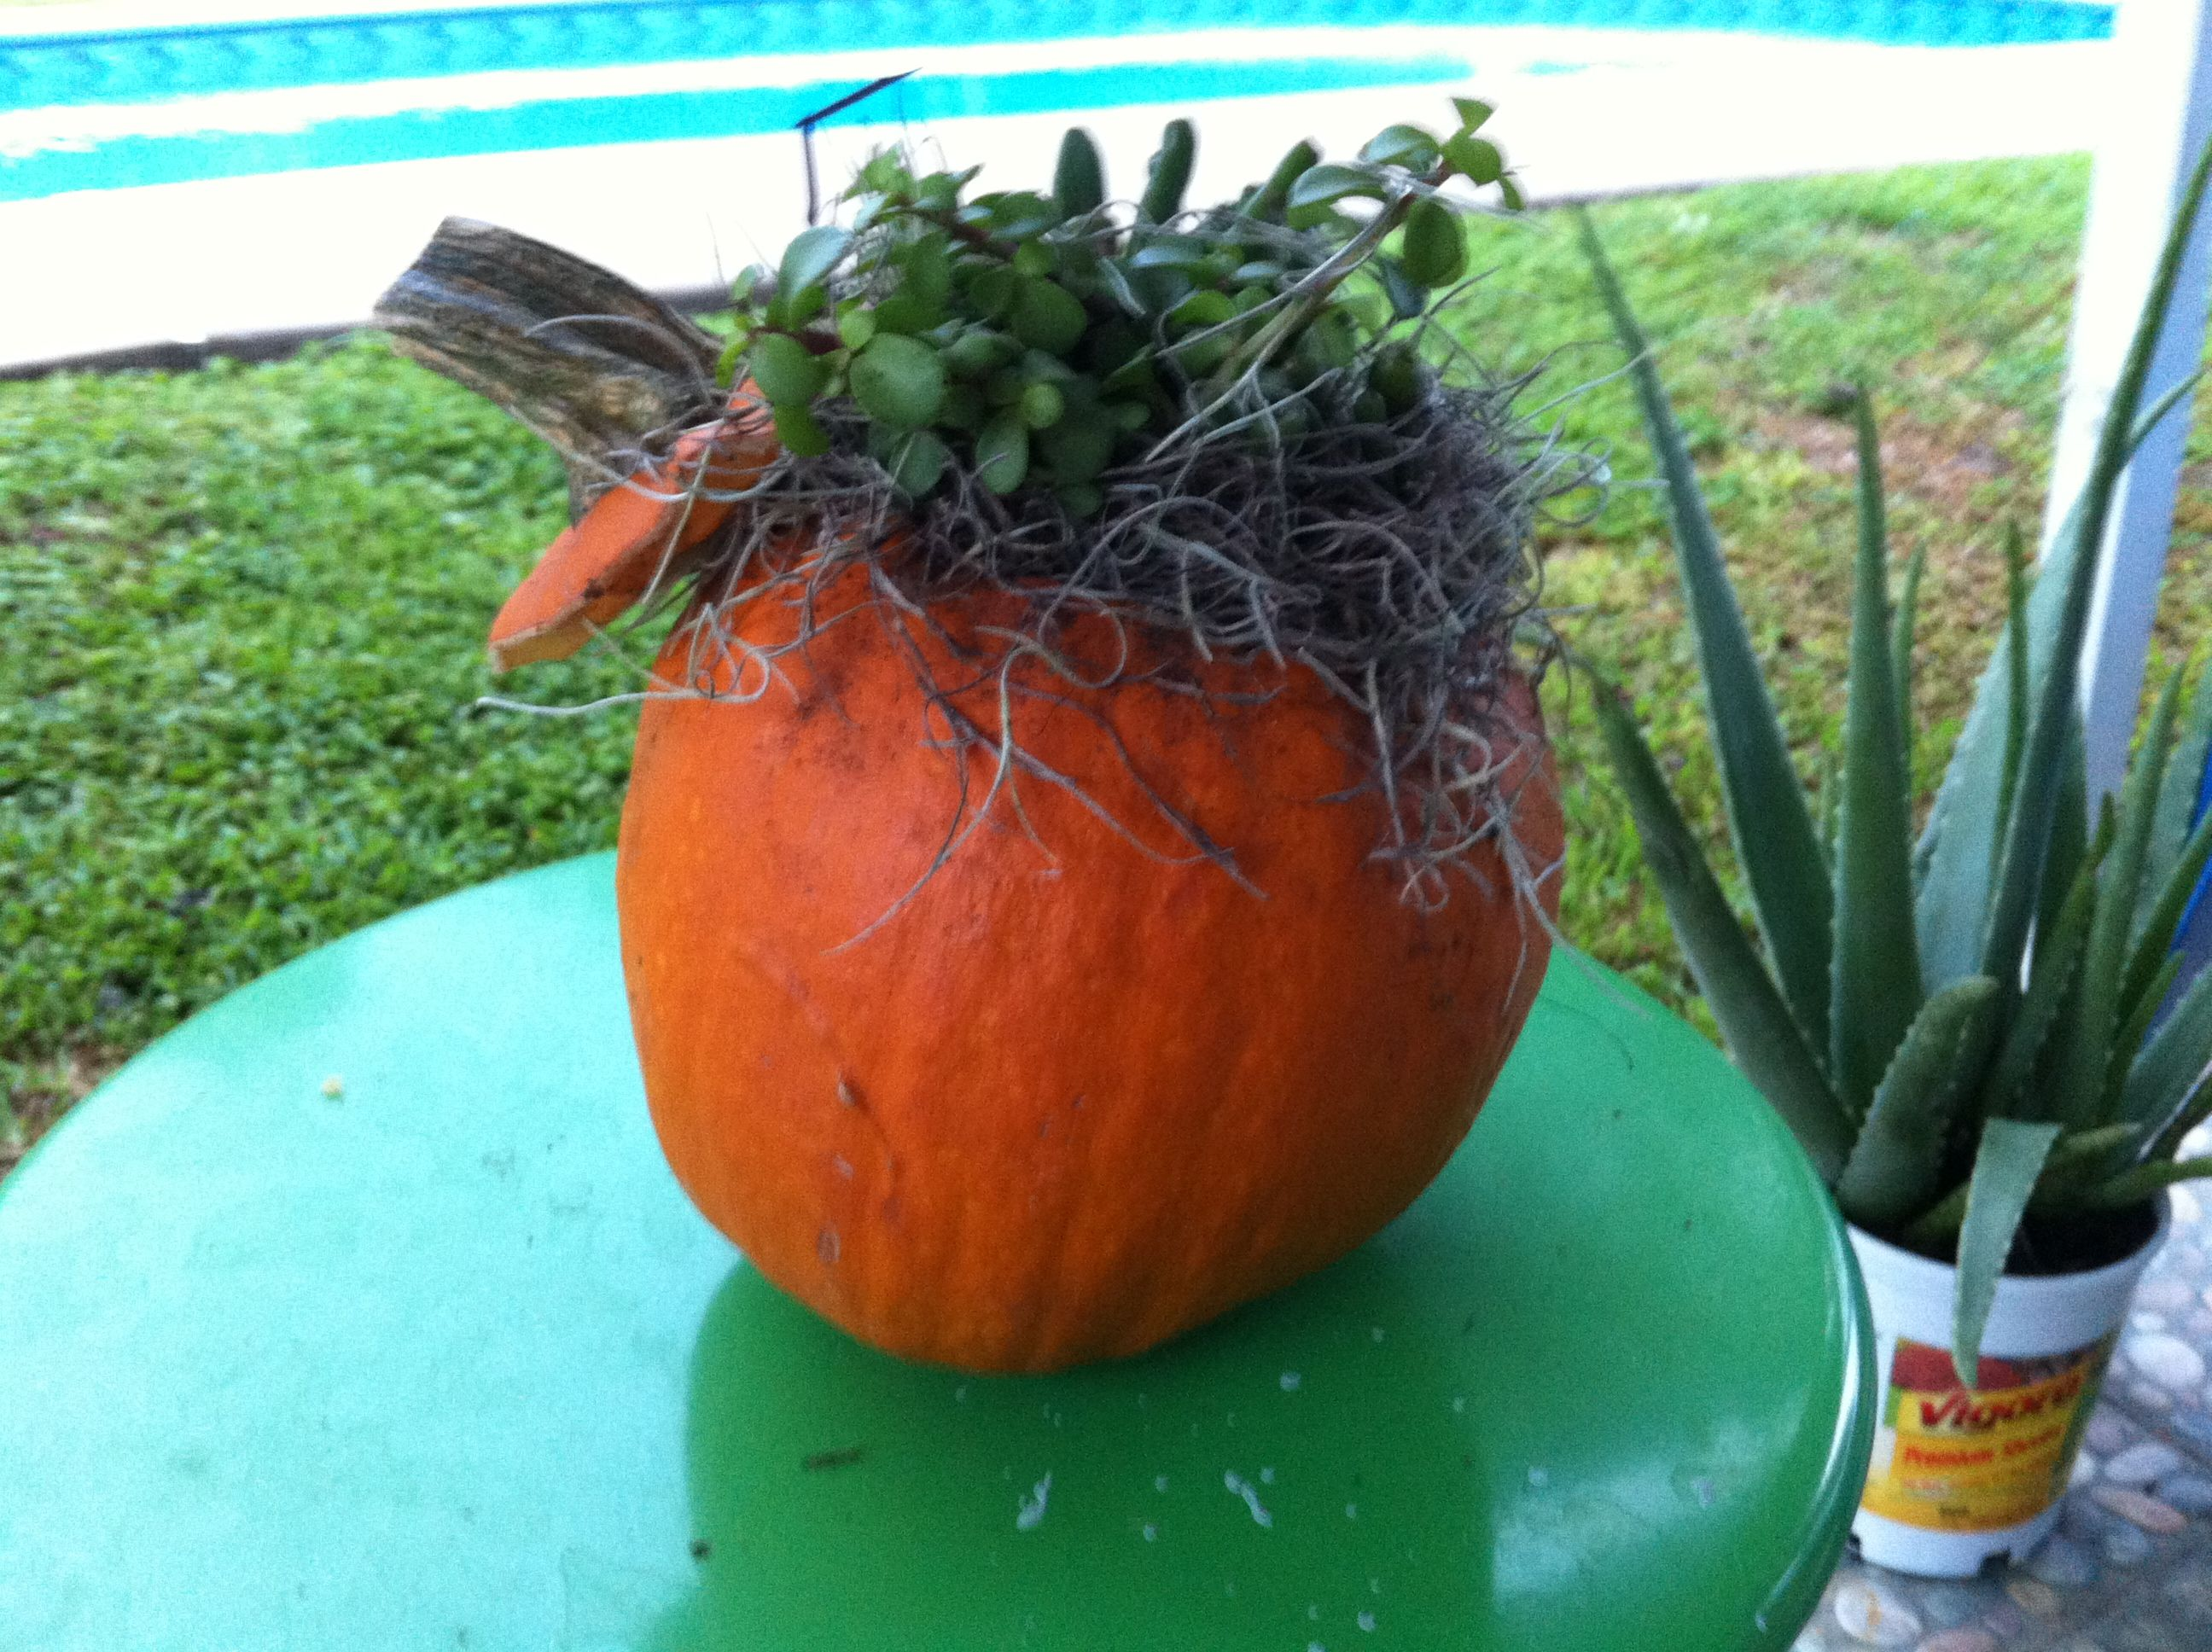 Rocks In Spanish Part - 19: So I Bought A Pumpkin From Walmart Hollowed It Put Some Rocks In The Bottom  Filled With Dirt And Stuck Cacti In It Covered In Spanish Moss, Its Doing  Great ...